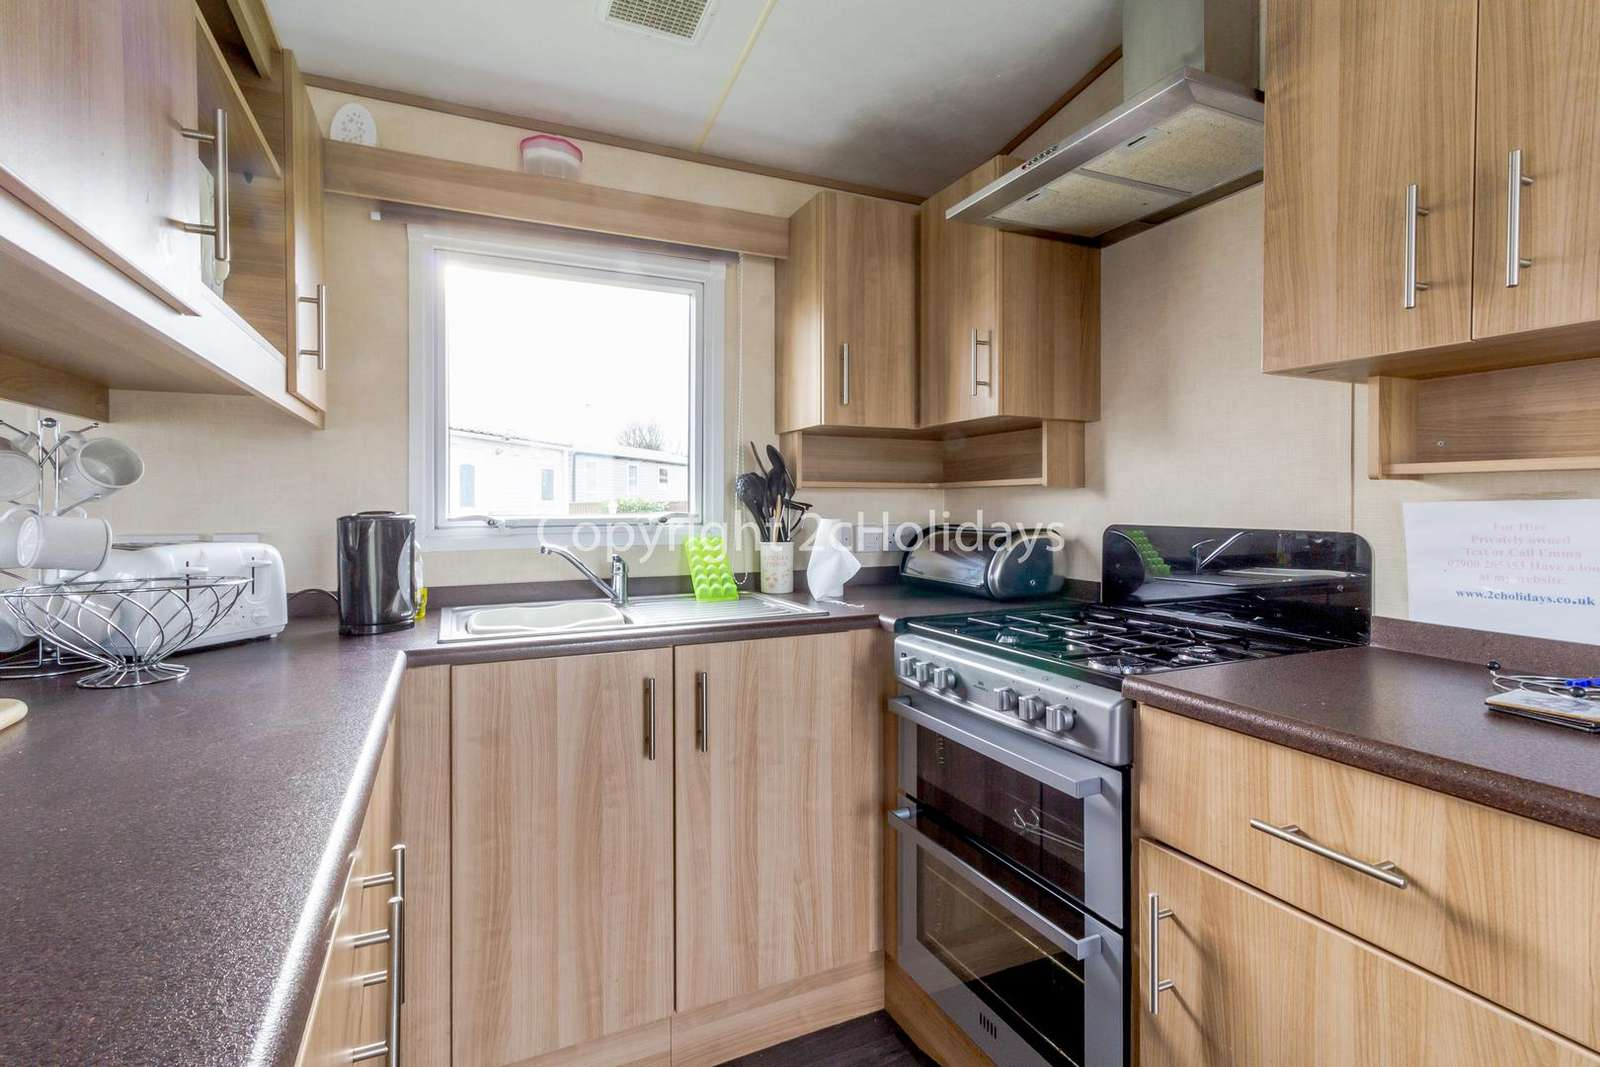 You can find plenty of storage in this kitchen as well as a full size cooker!